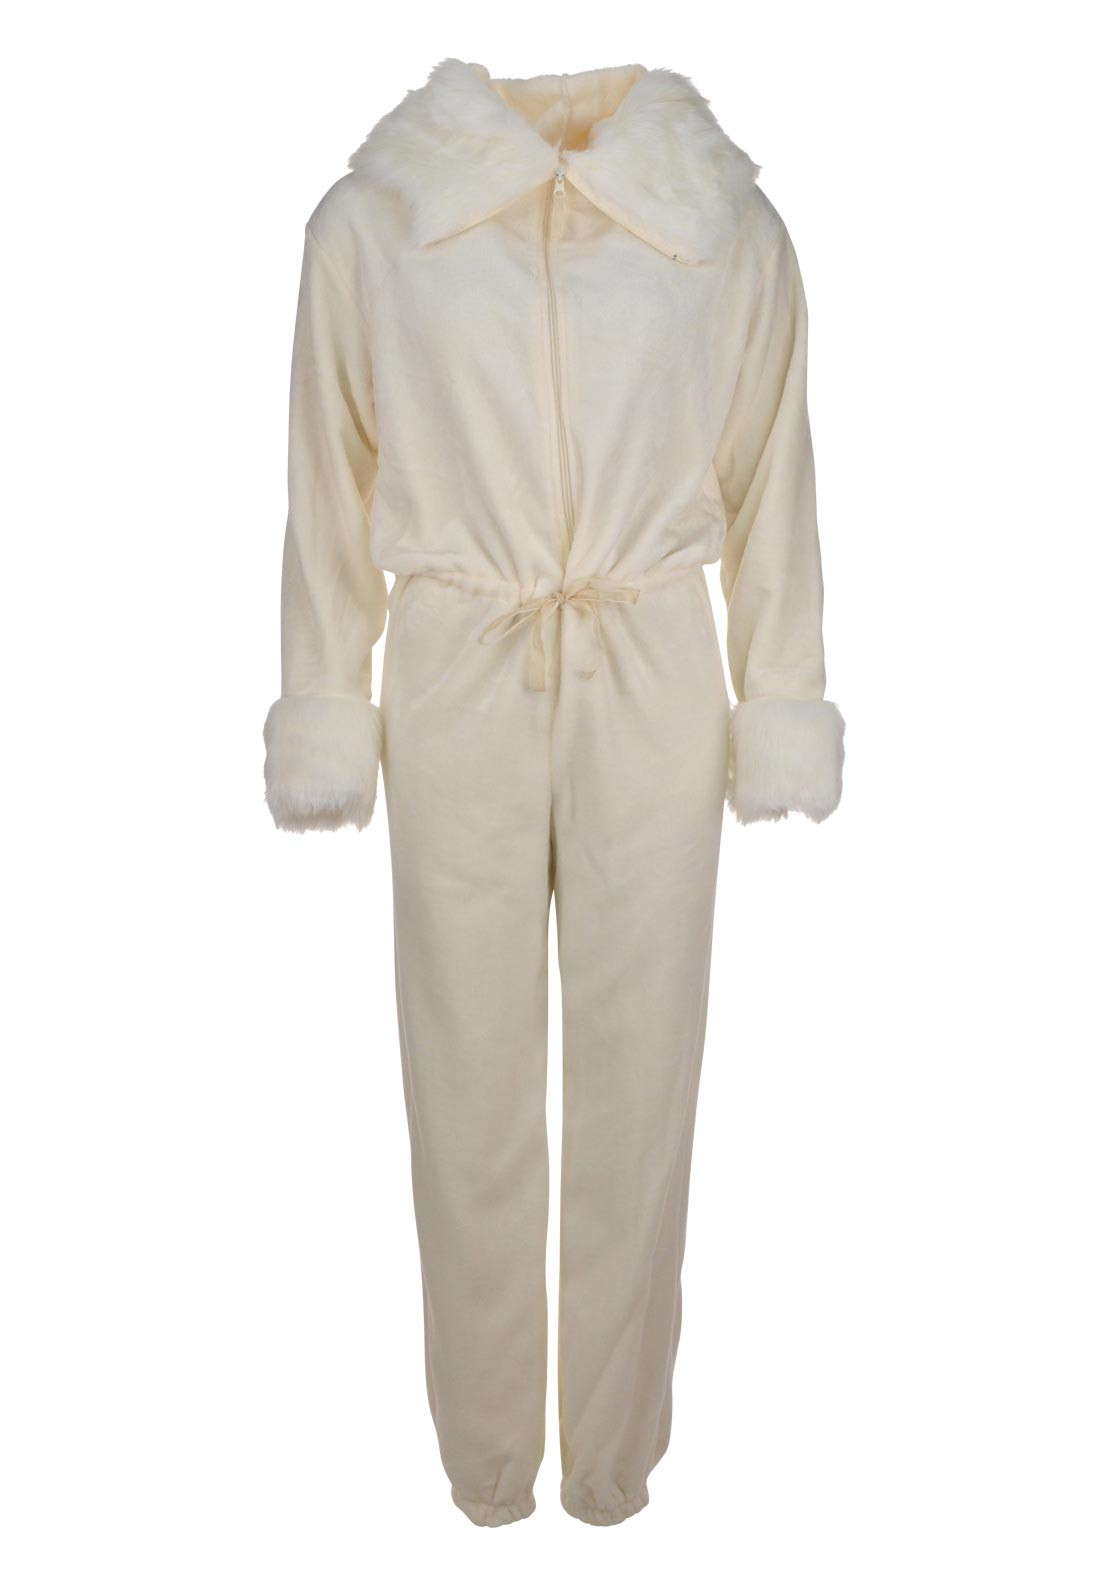 Inspirations Luxury Faux Fur Trimmed Hood Onesie, Ivory